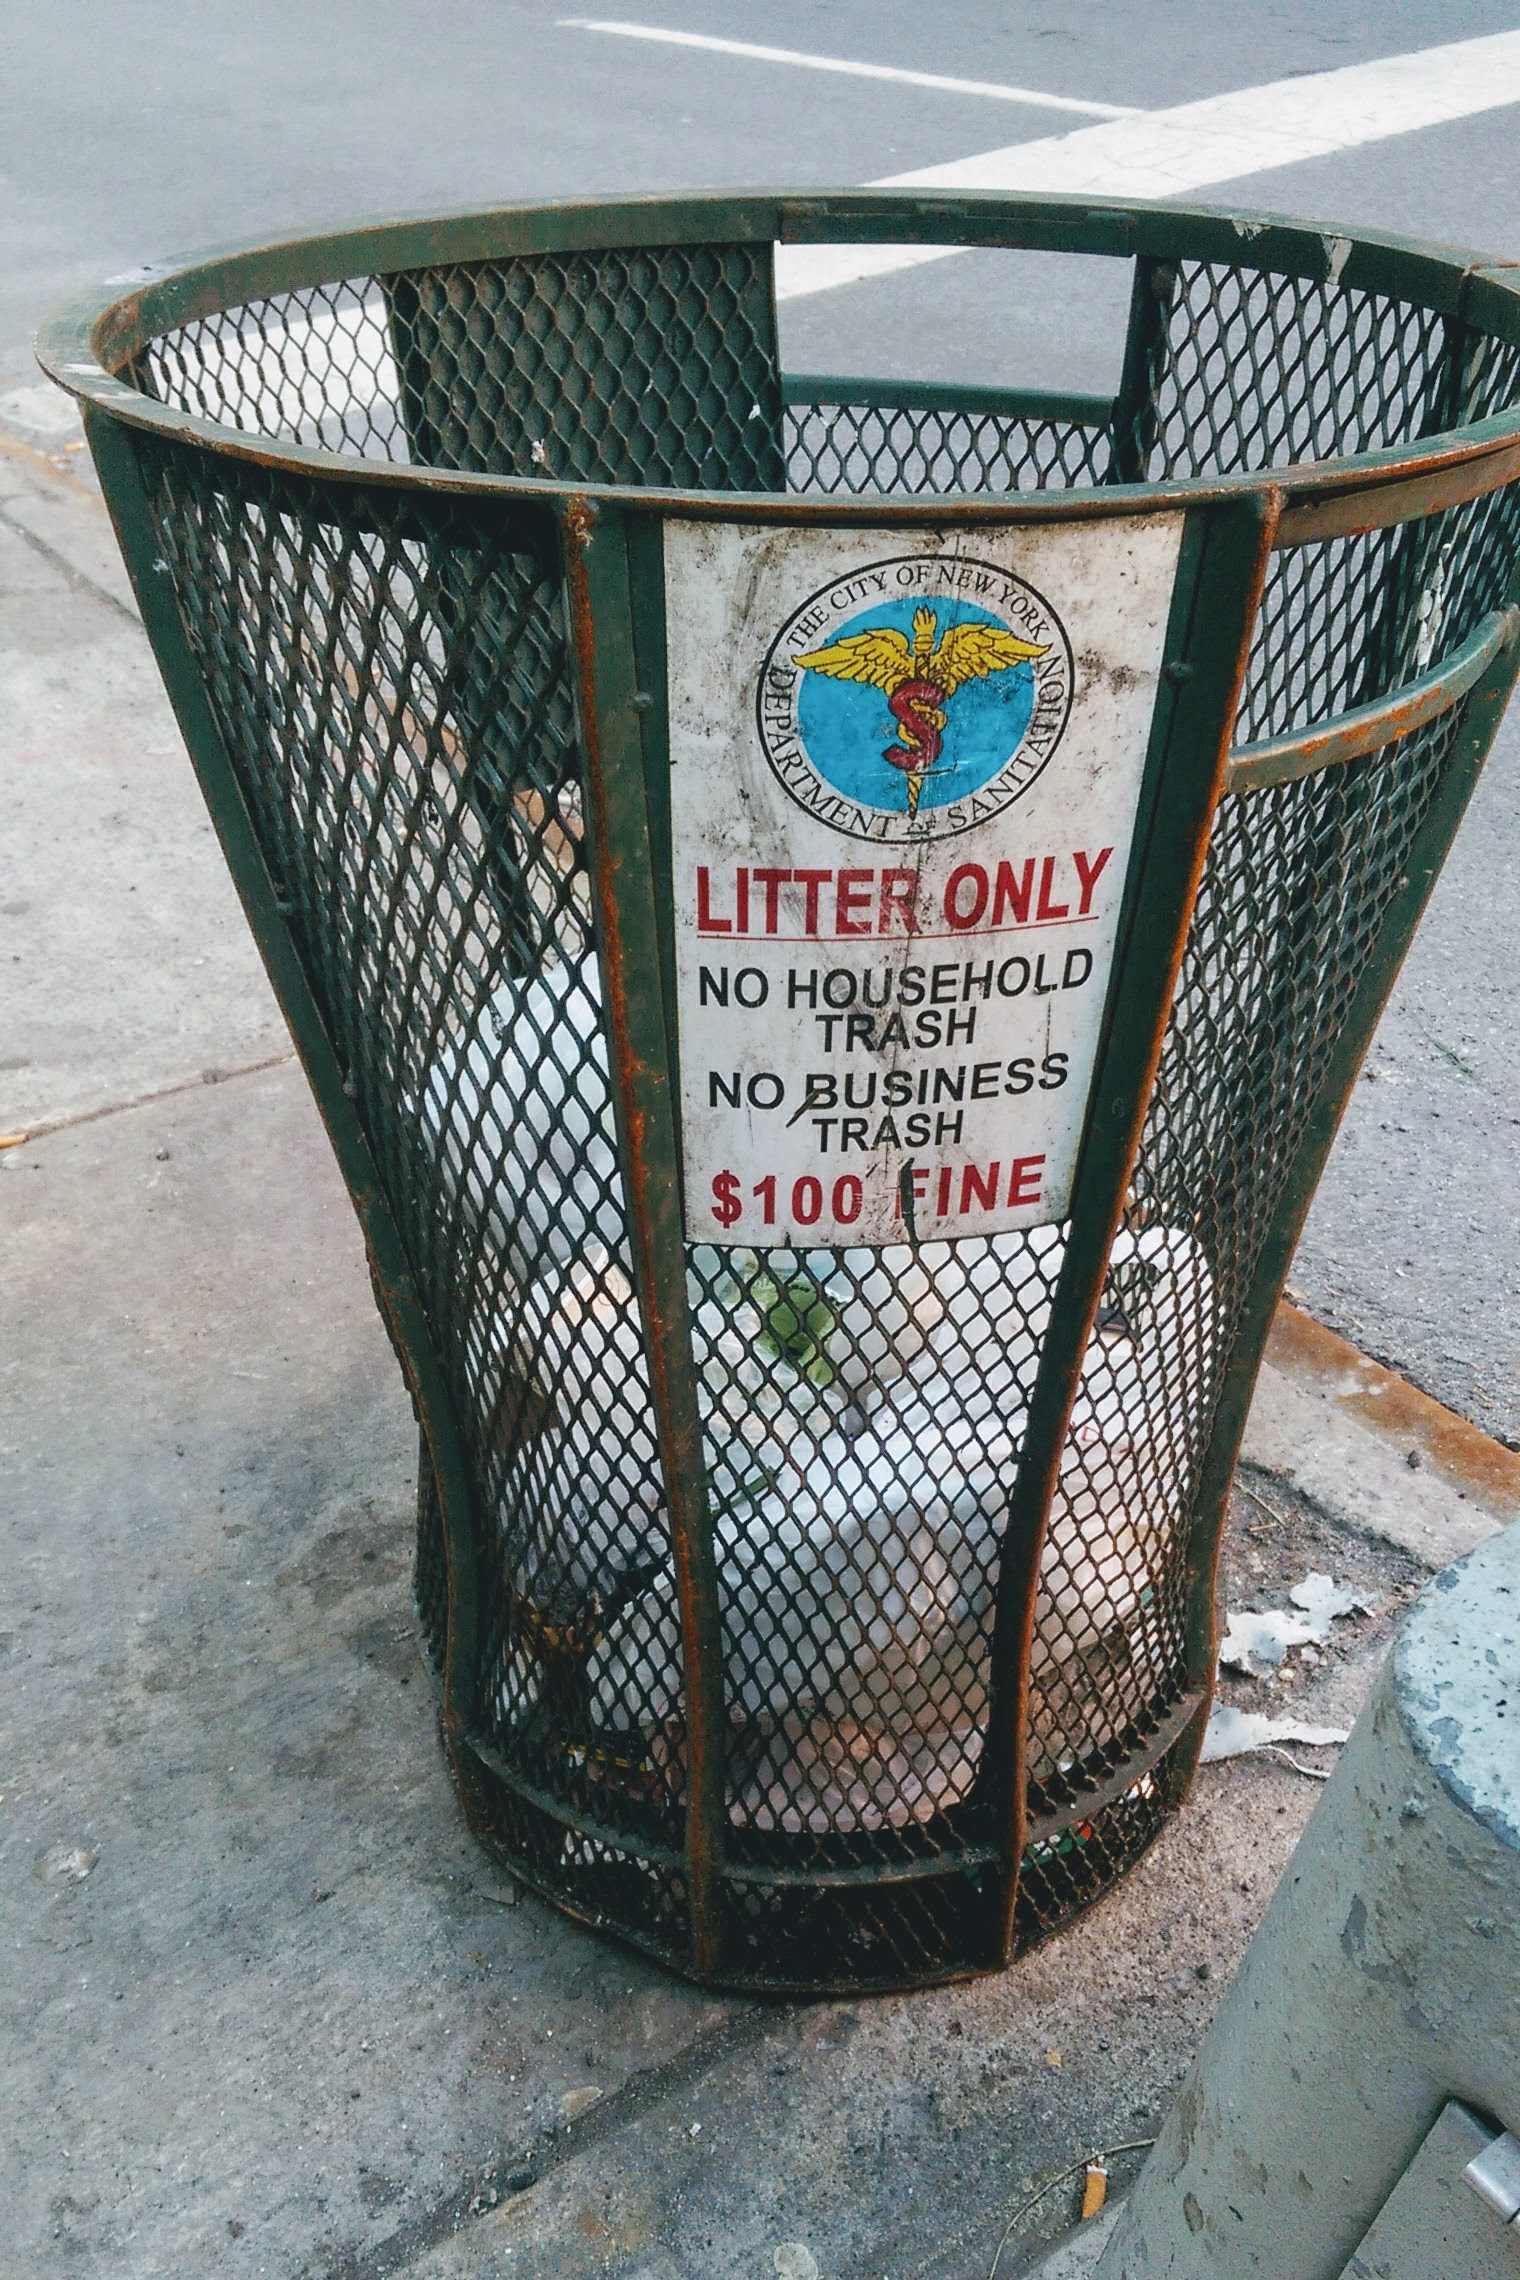 Litter_Only_NYC.jpg